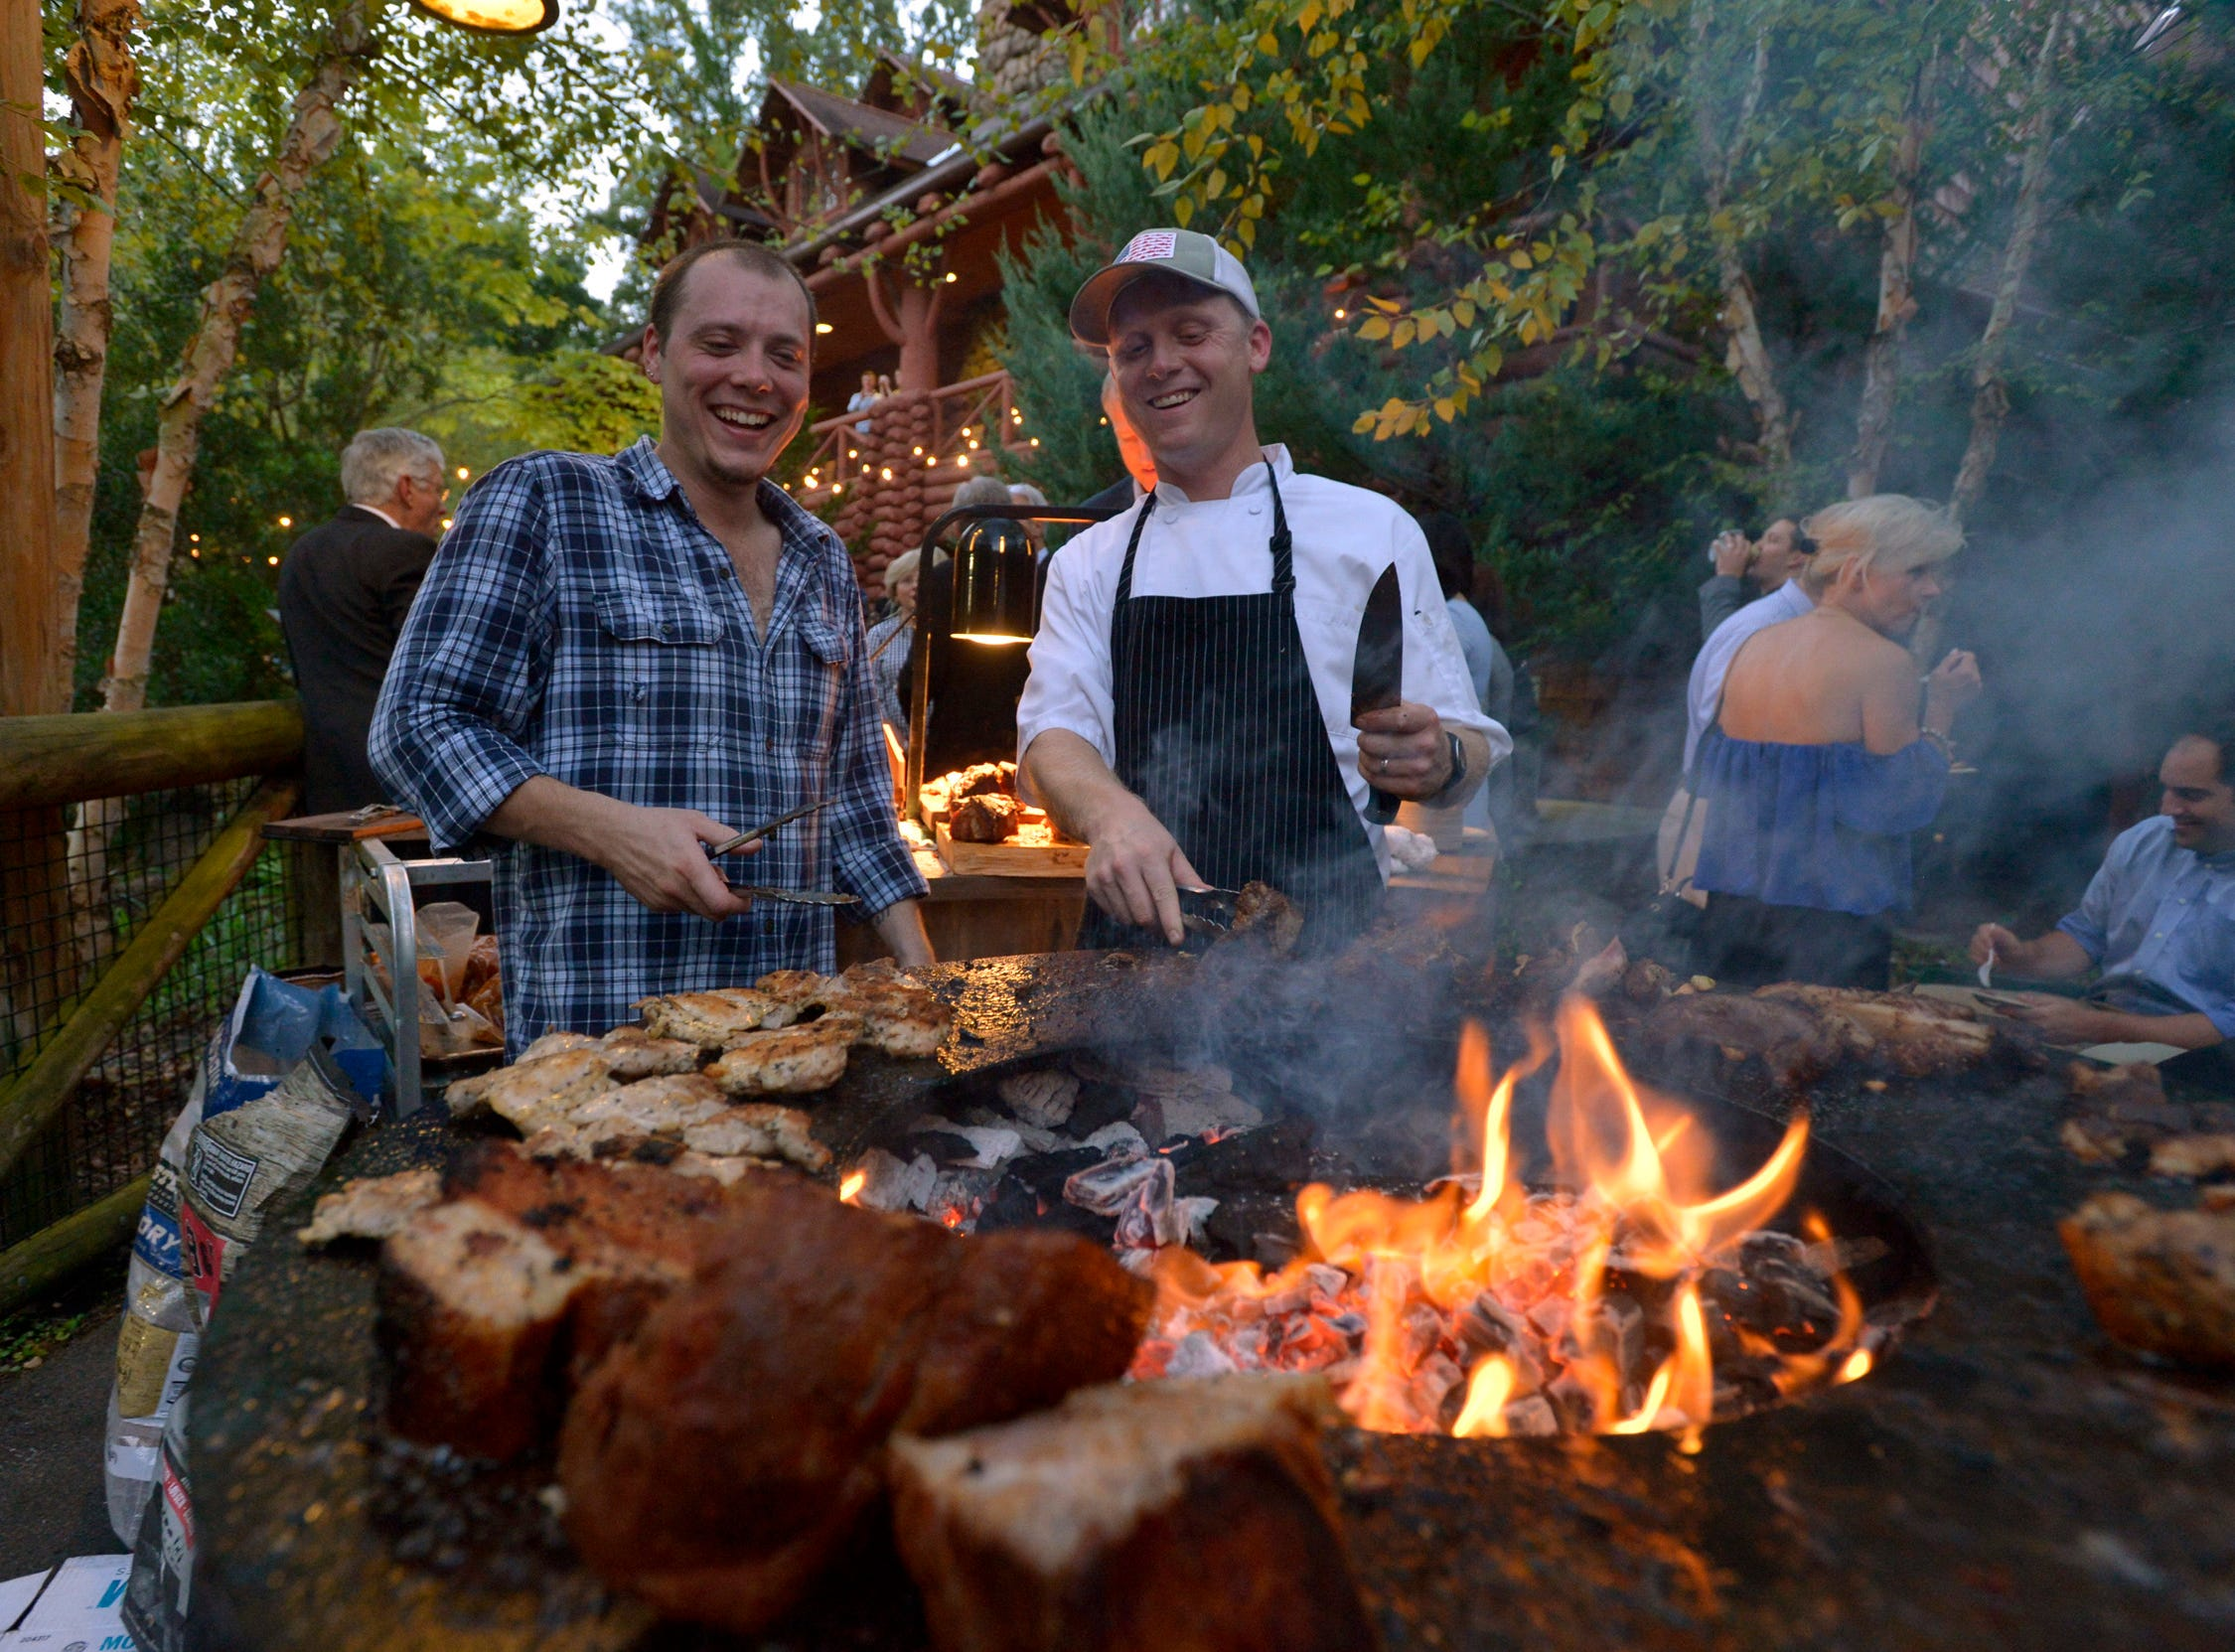 September 13, 2018 - Ronny Roberson, left, and Jordan Buchanan, with Paradox Catering, grill meat during the 2018 Memphis Most awards party at Teton Trek in the Memphis Zoo. (Brandon Dill for The Commercial Appeal)